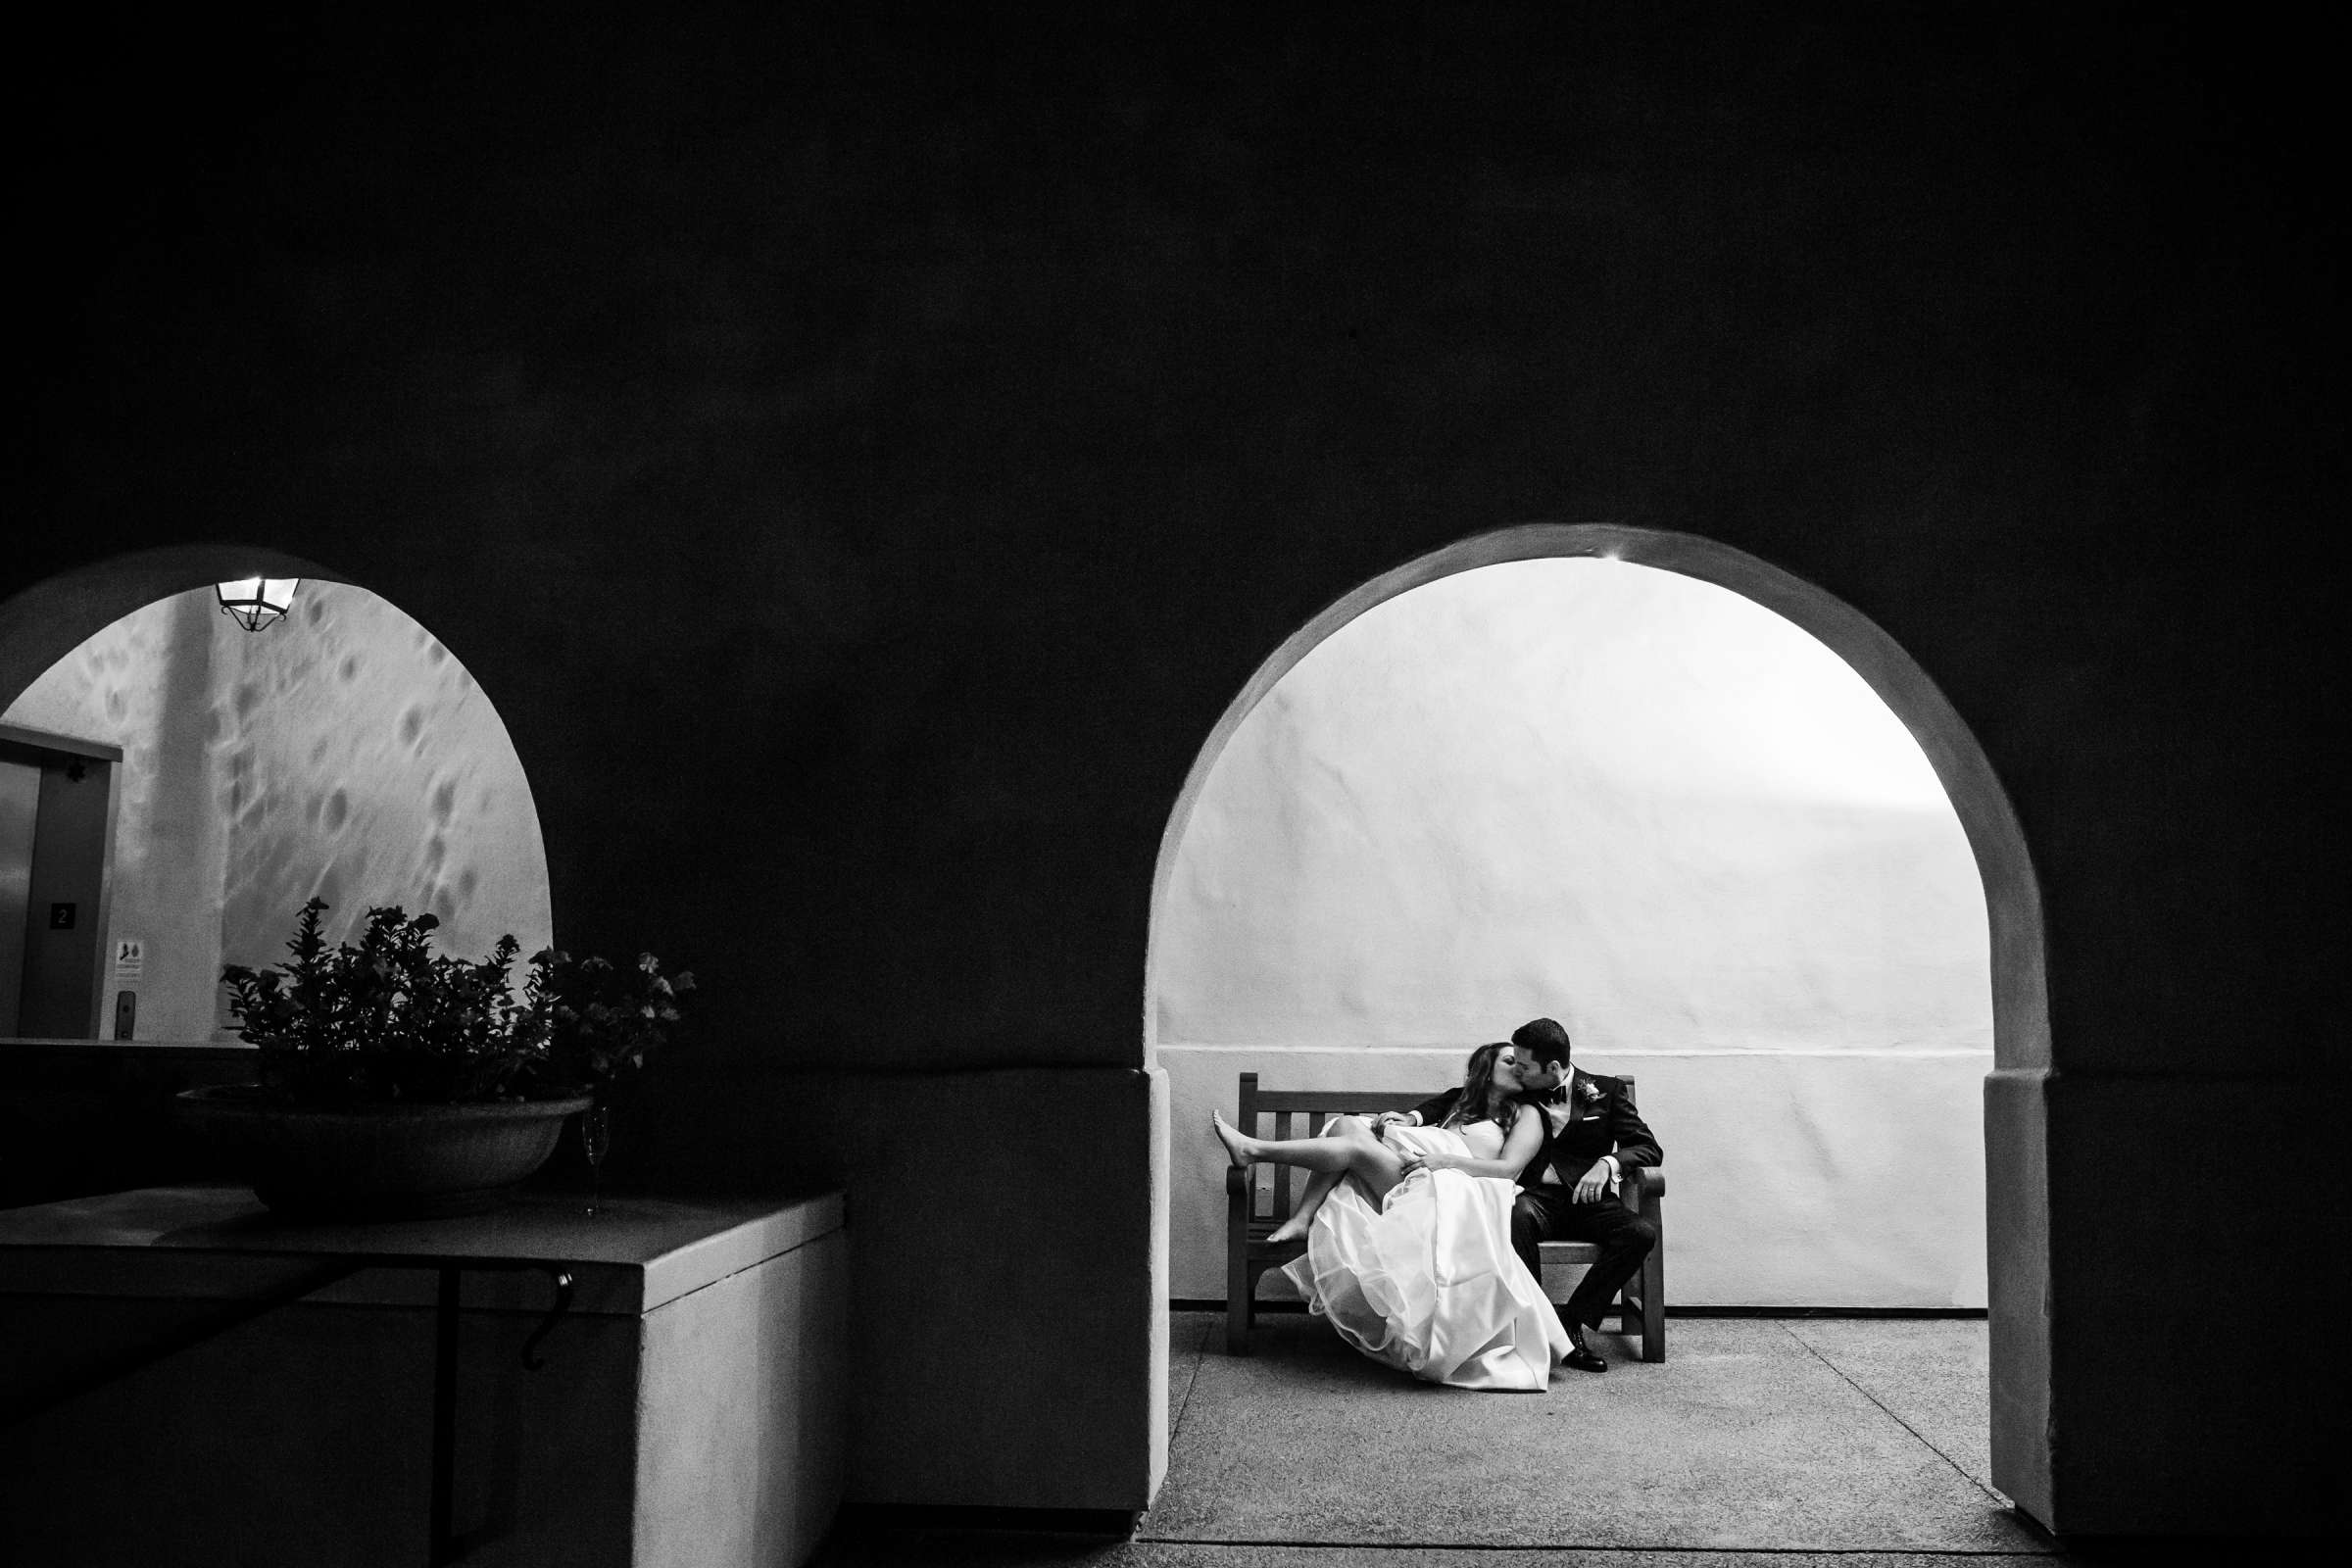 Rancho Bernardo Inn Wedding coordinated by Très Chic Events, Stefania and Nicholas Wedding Photo #11 by True Photography